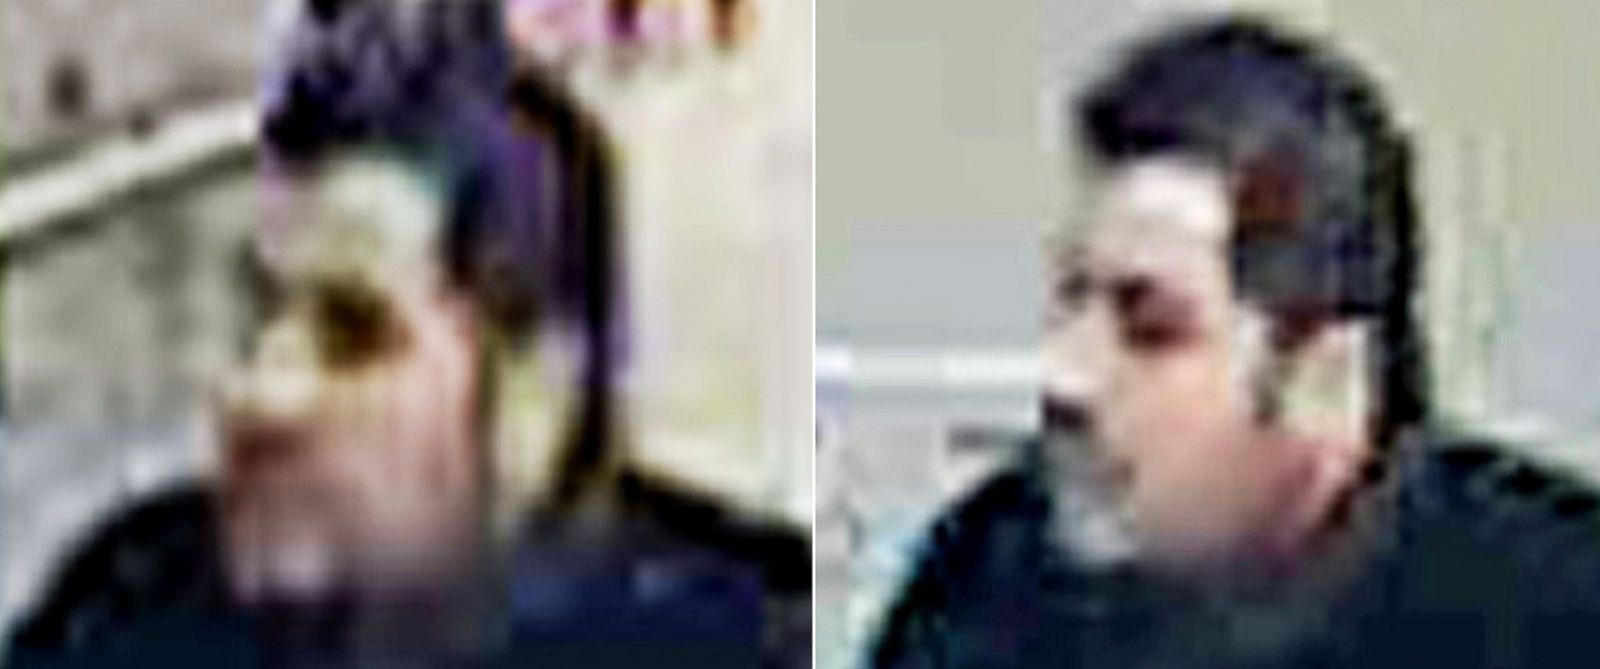 PHOTO: Ibrahim El-Bakhraoui, pictured, has been identified as one of the two alleged suicide bombers at the Brussels airport on March 22, 2016.